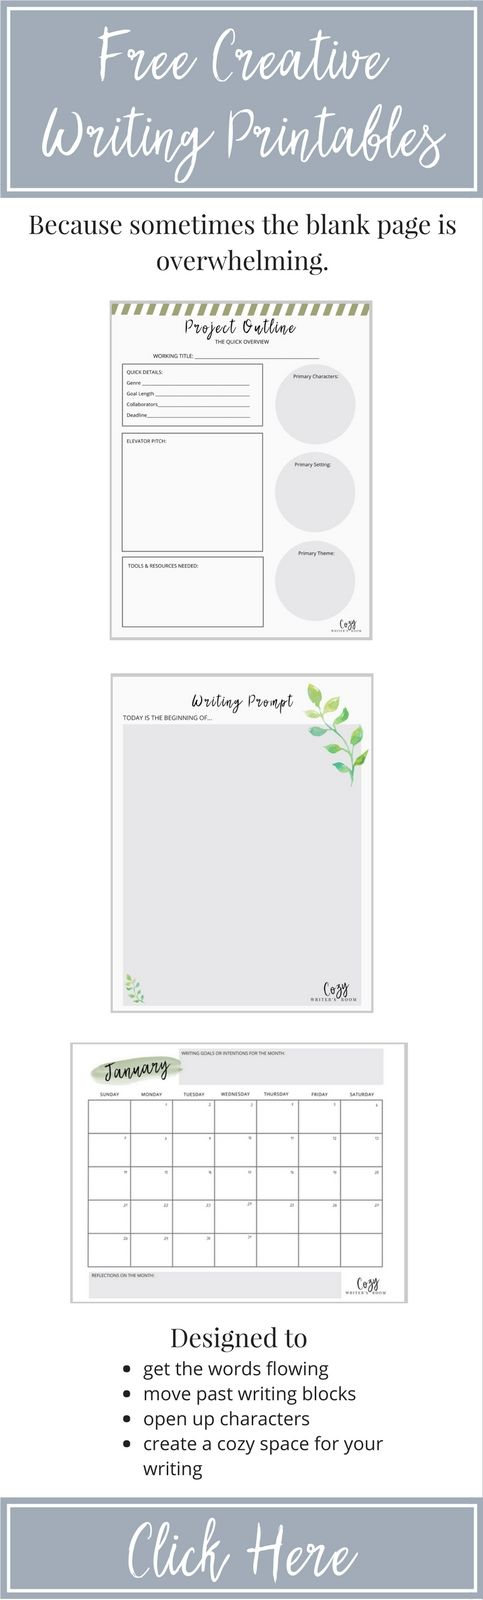 Free Creative Writing Printables For Adults. Including Writing Prompts,  Project Printabl… Picture Writing Prompts, Writing Printables, Writing  Prompts For Writers